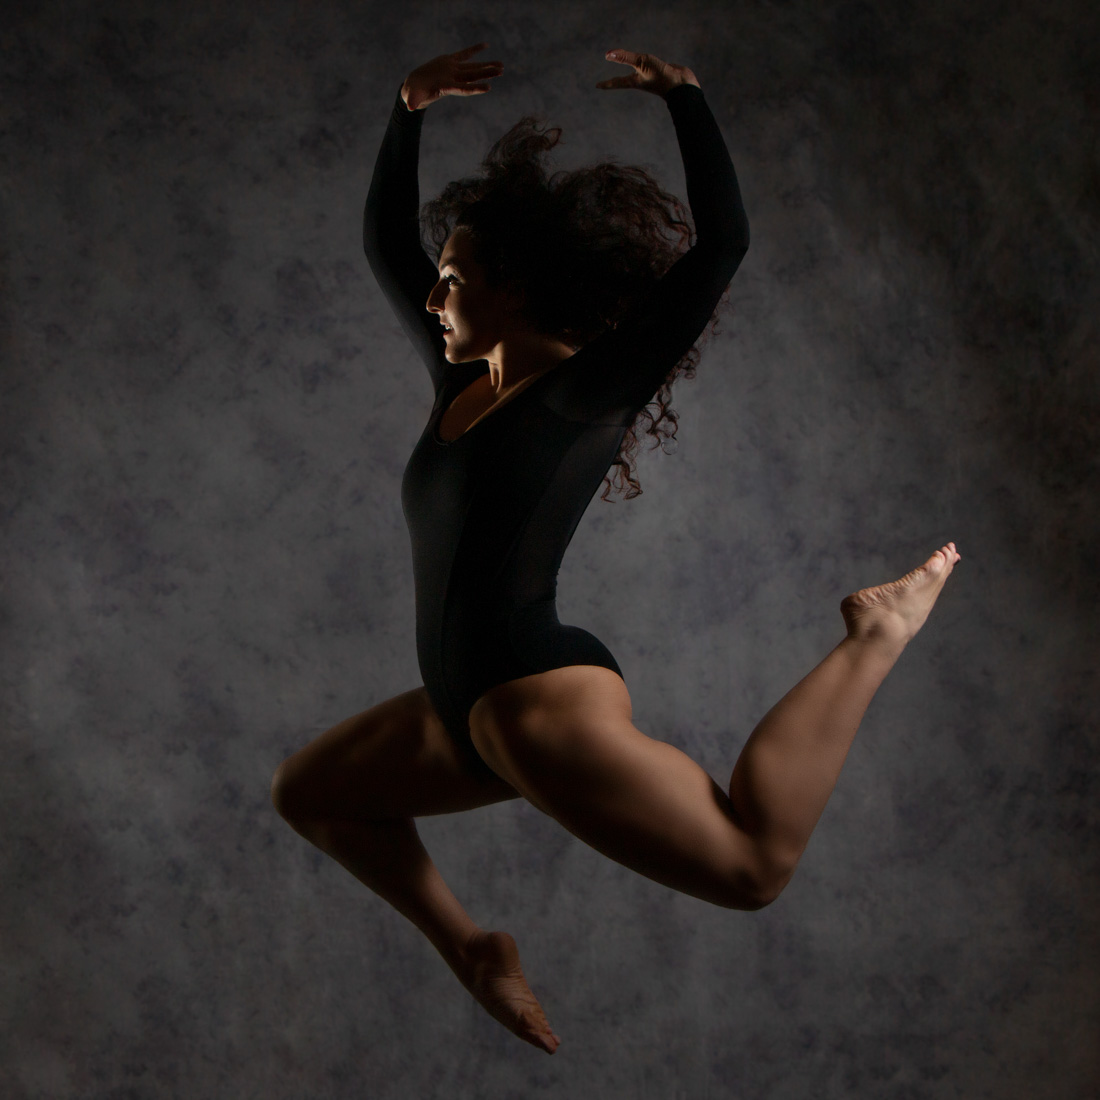 Contemporary dancer jumping, dance photography by Anastasia Jobson